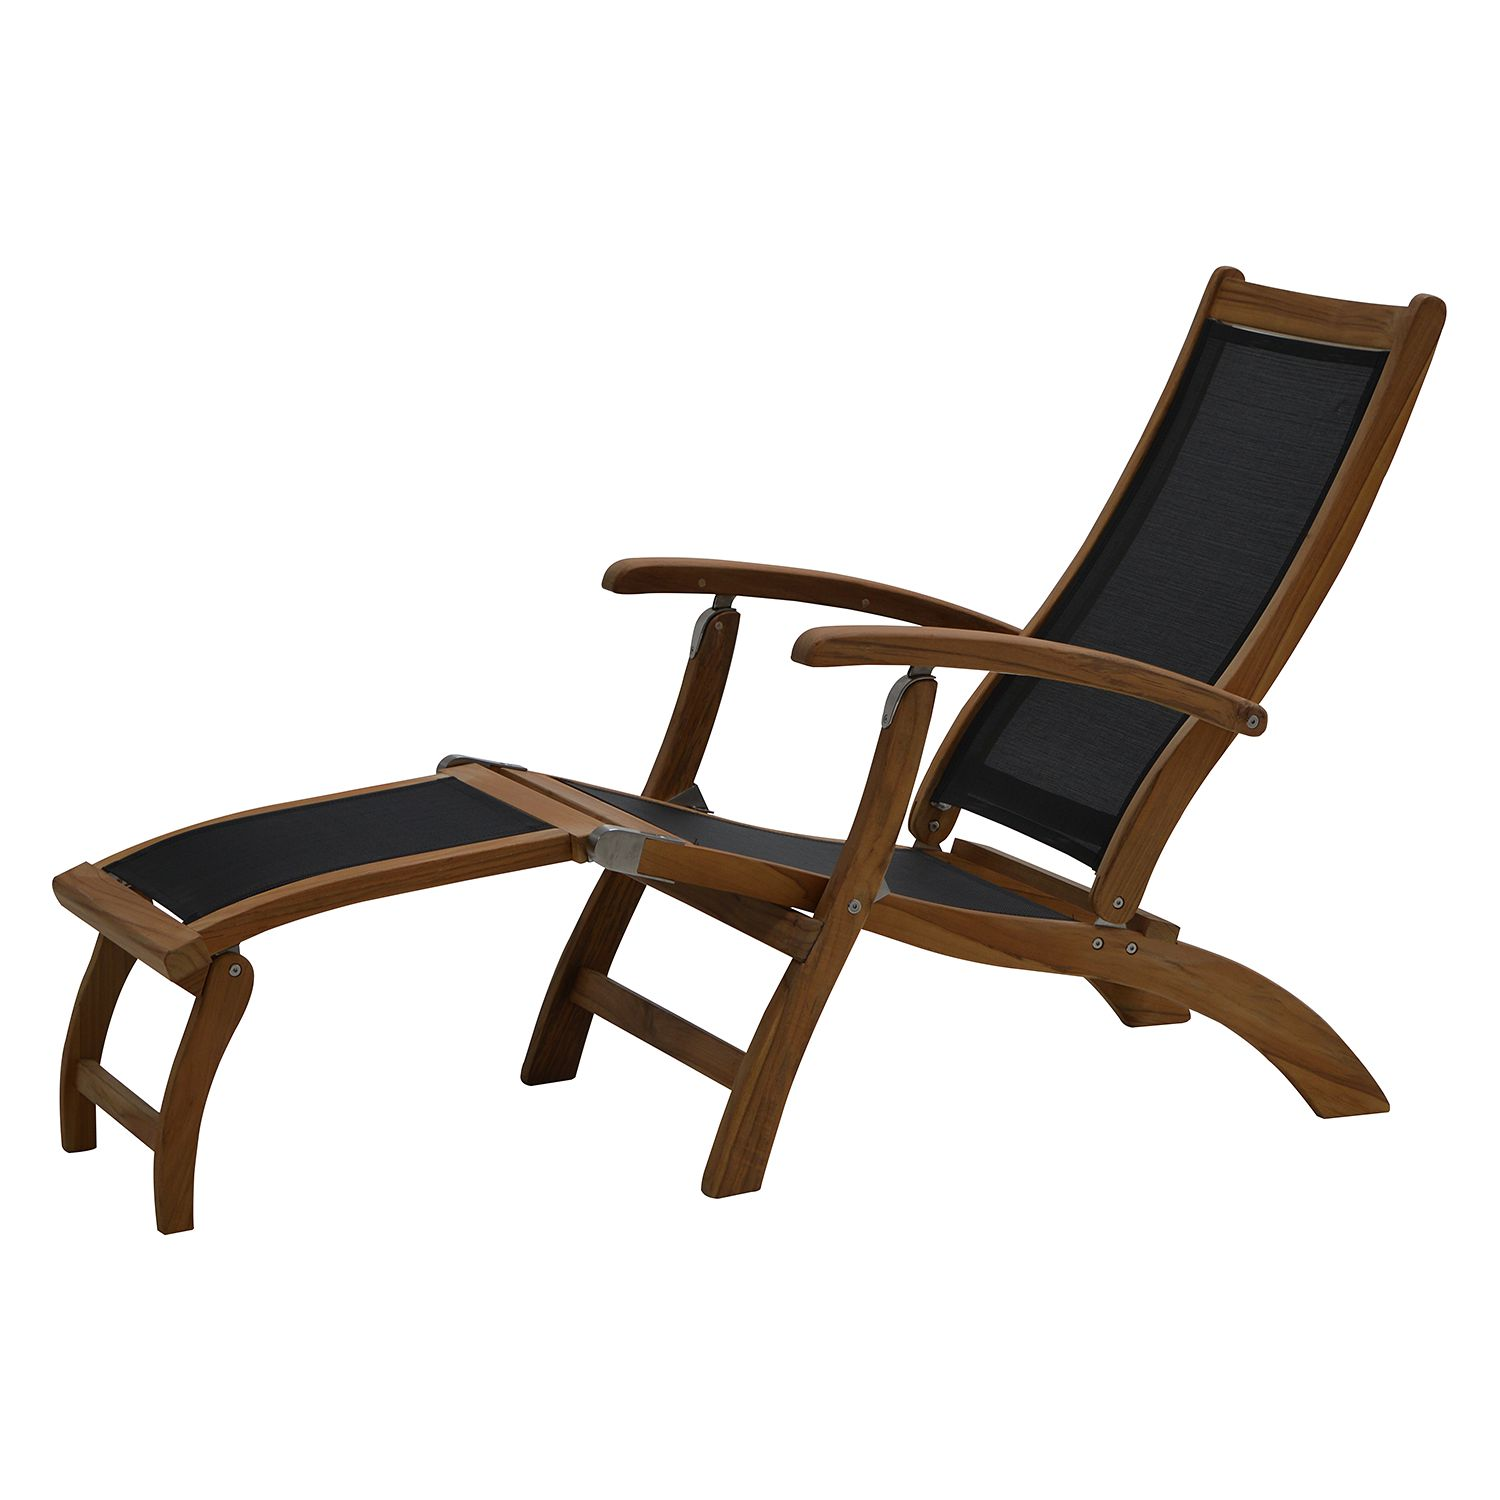 deckchair fairchild textilene teak massiv schwarz plo g nstig online kaufen. Black Bedroom Furniture Sets. Home Design Ideas